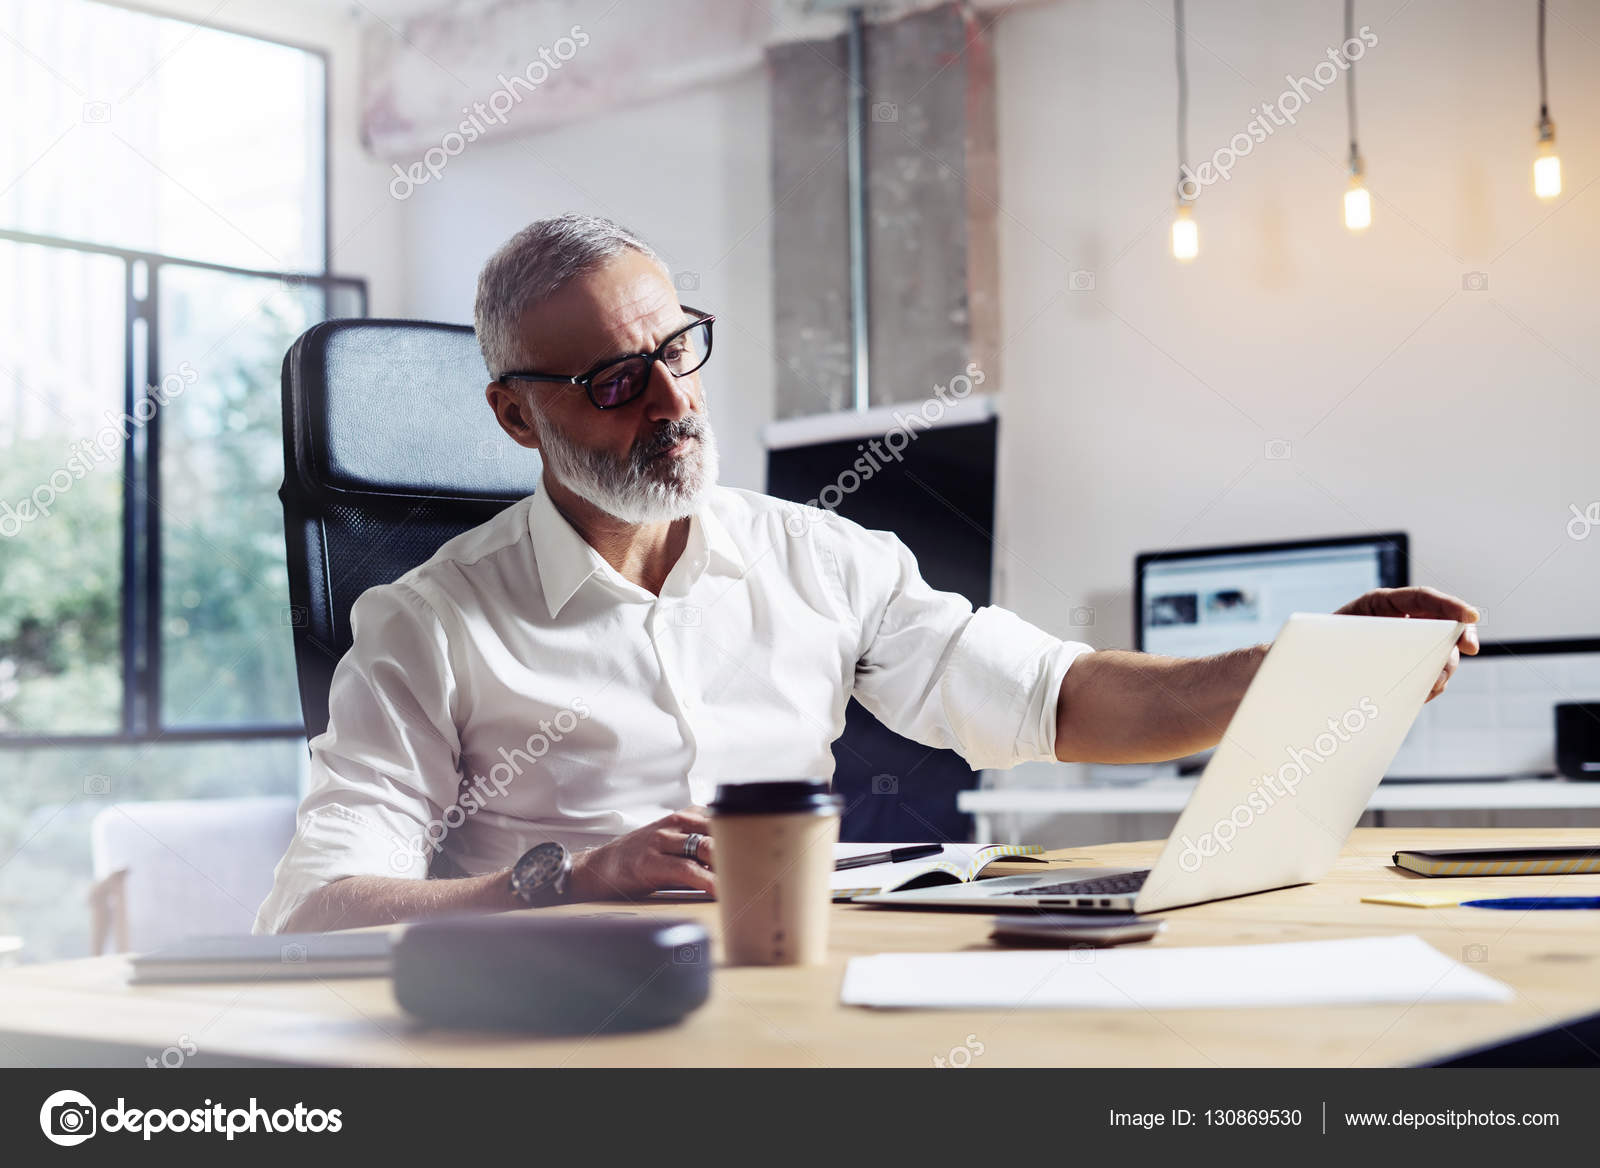 51 Best Images About Office On Pinterest The Quails And